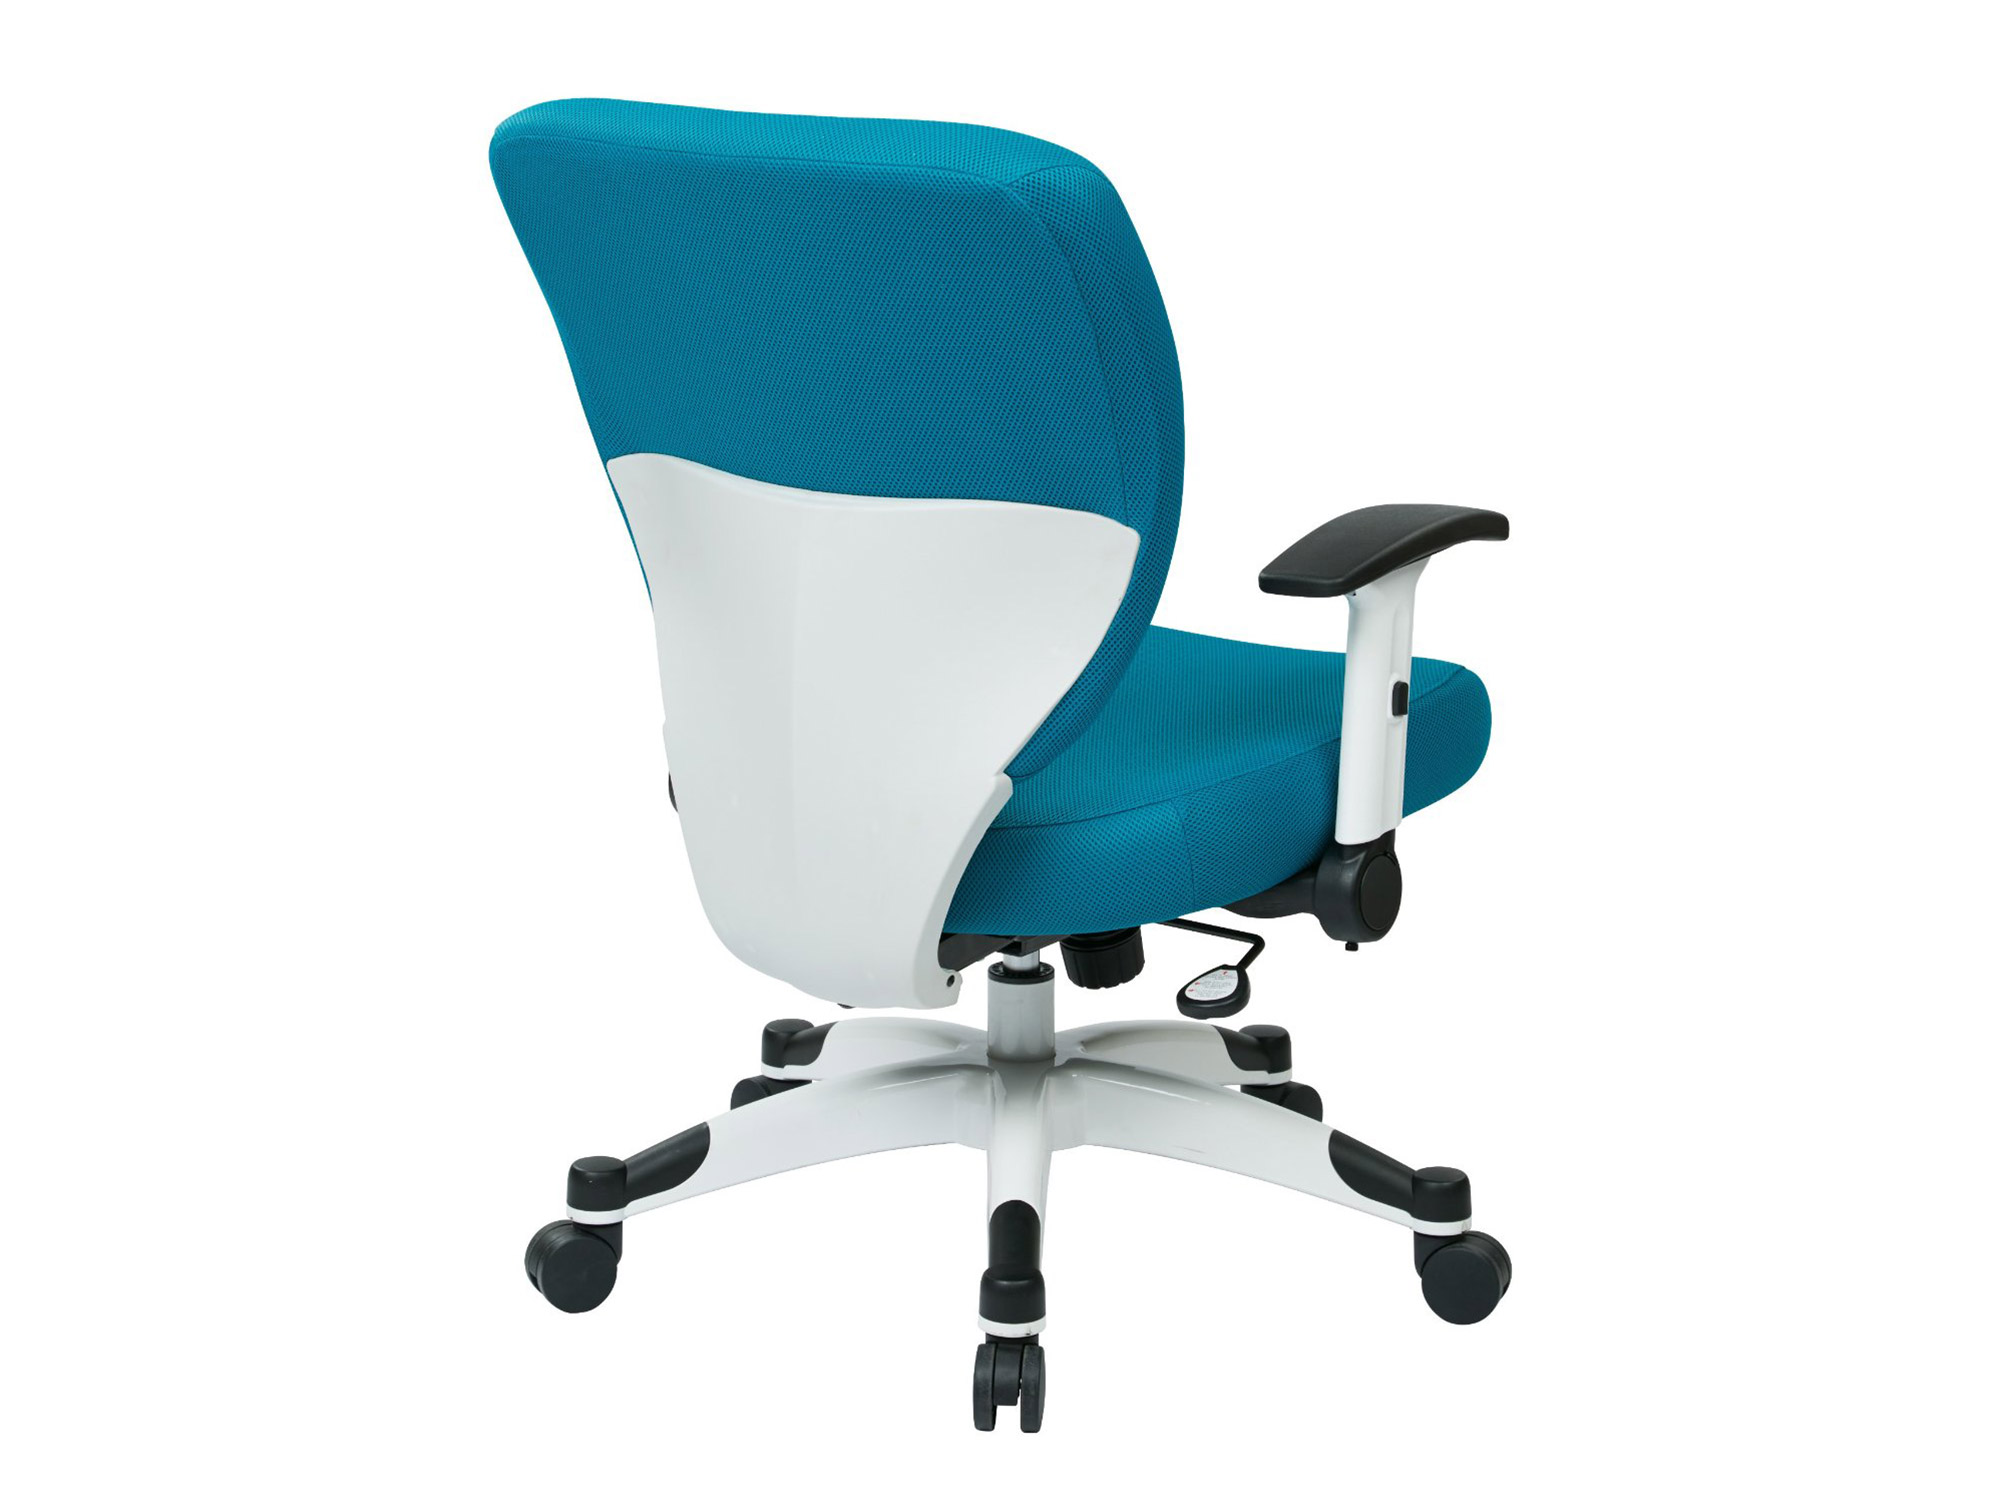 Blue Desk Chair fice Task Chairs Chairs For fice